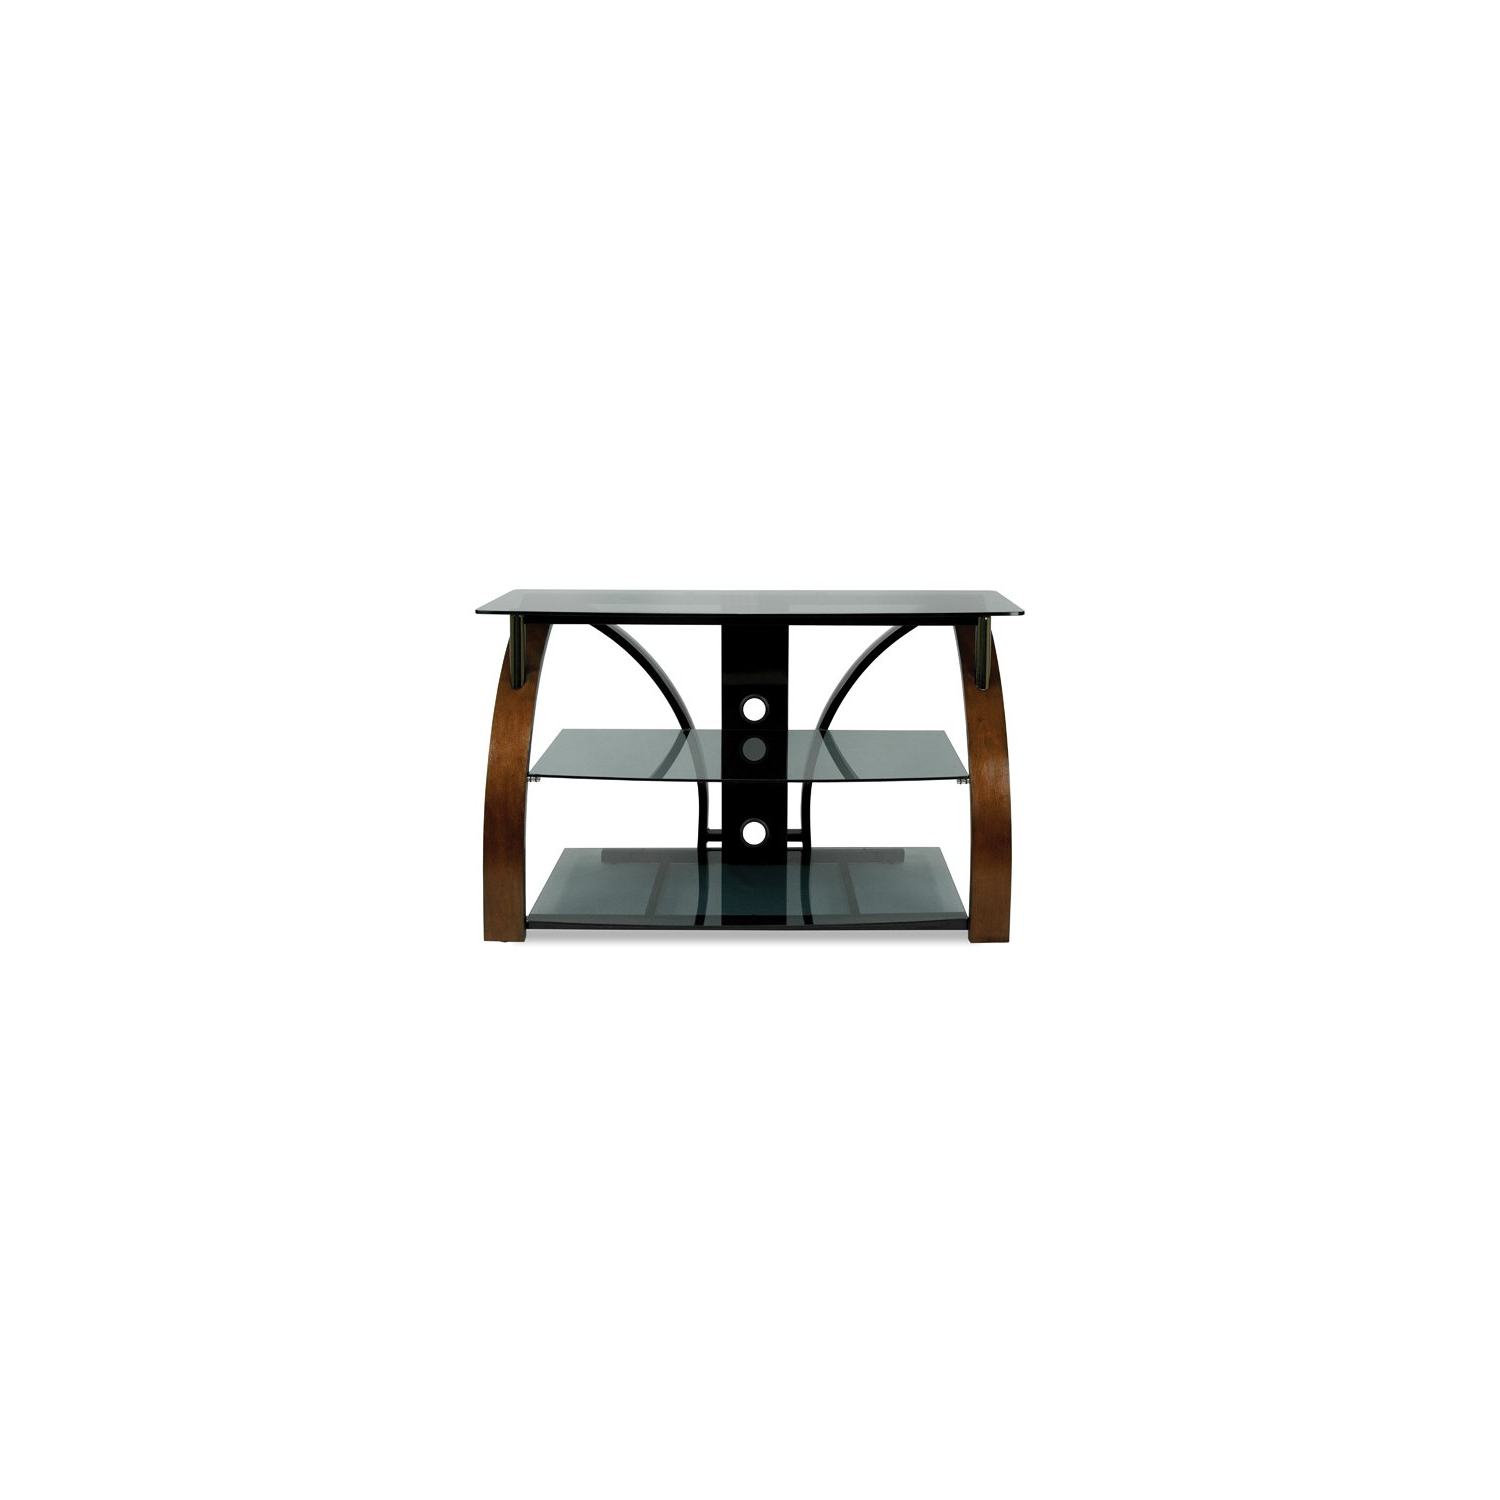 "Widely Used Bell O Triple Play Tv Stands Regarding Bell'o 44"" Triple Play Universal Flat Panel Mounting System – Tpc (View 19 of 20)"